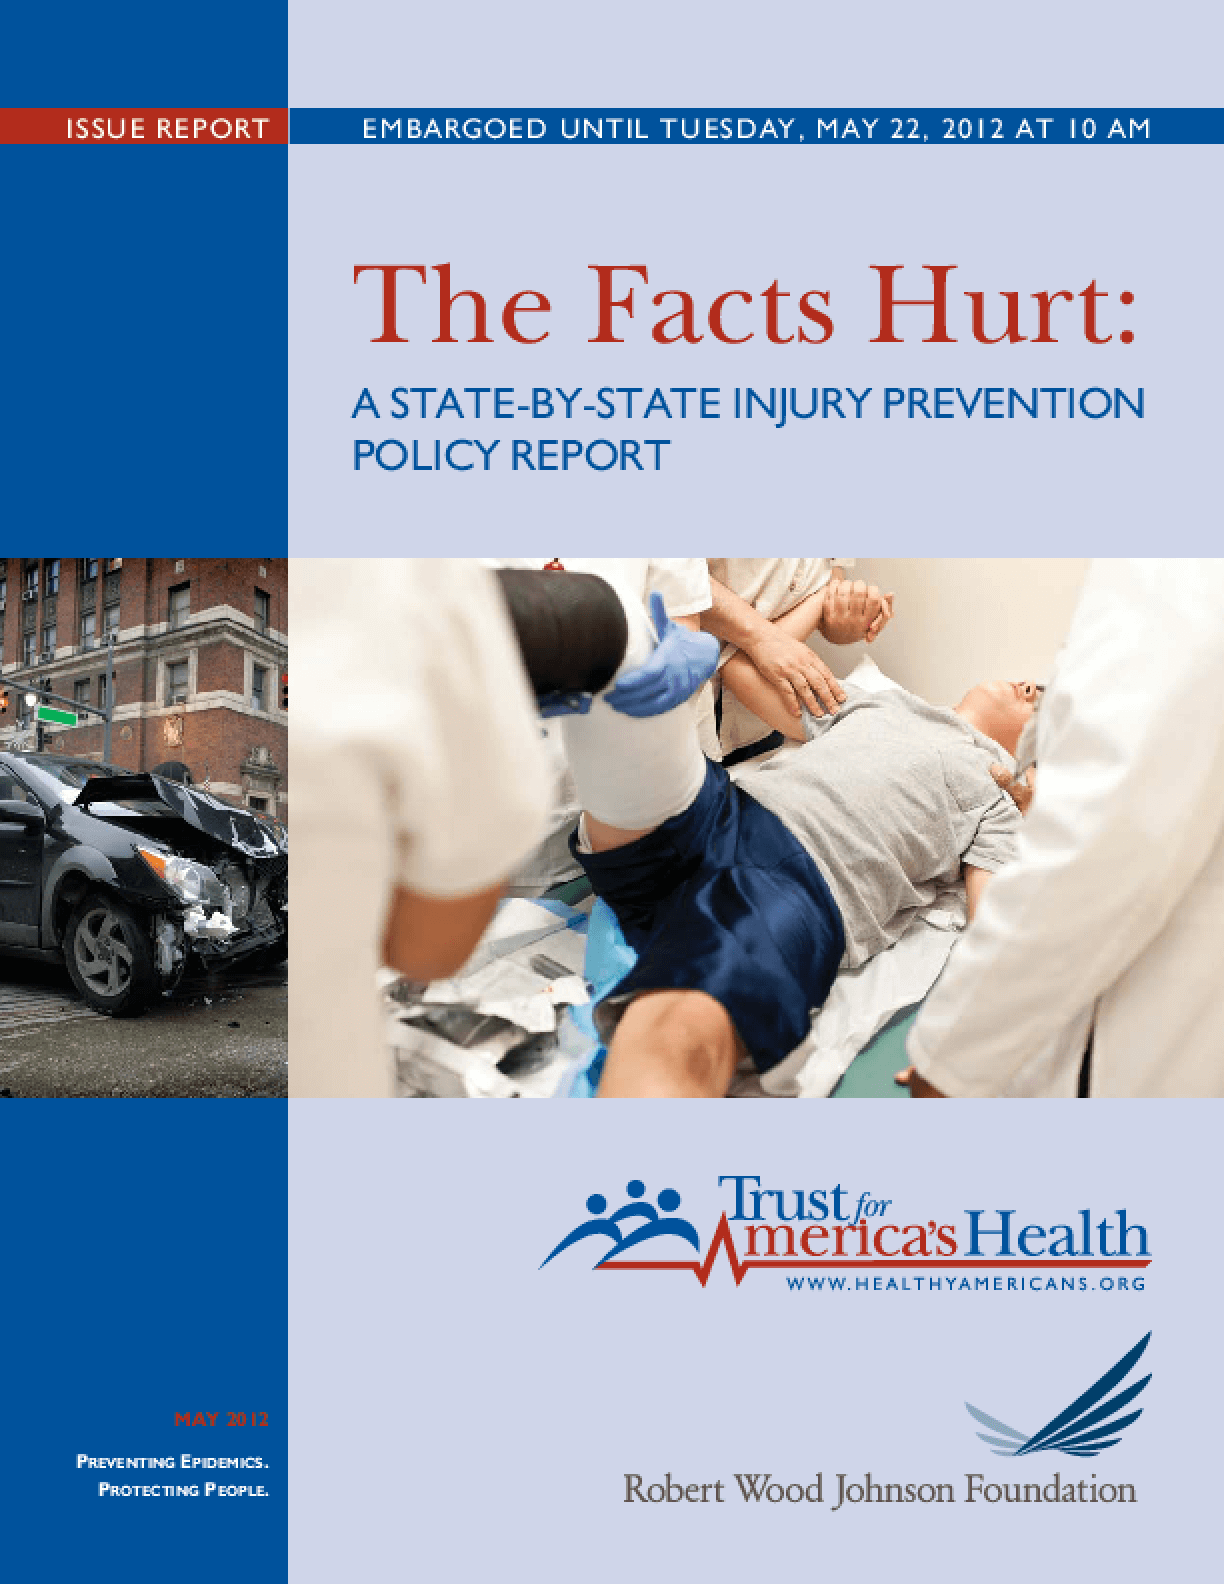 The Facts Hurt: A State-by-State Injury Prevention Policy Report